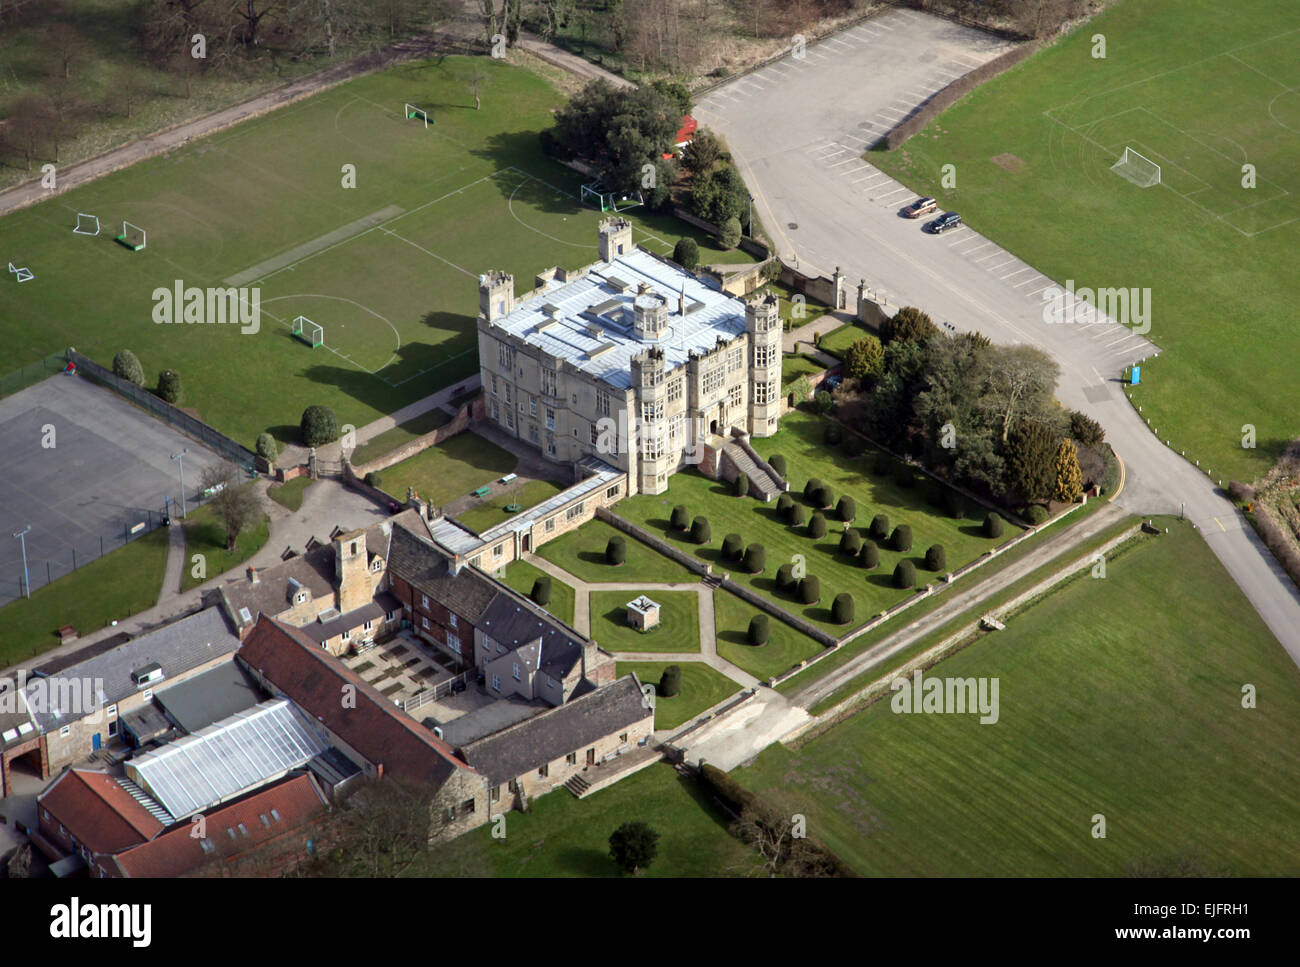 aerial view of Barlborough Hall, a private school near Chesterfield, UK - Stock Image